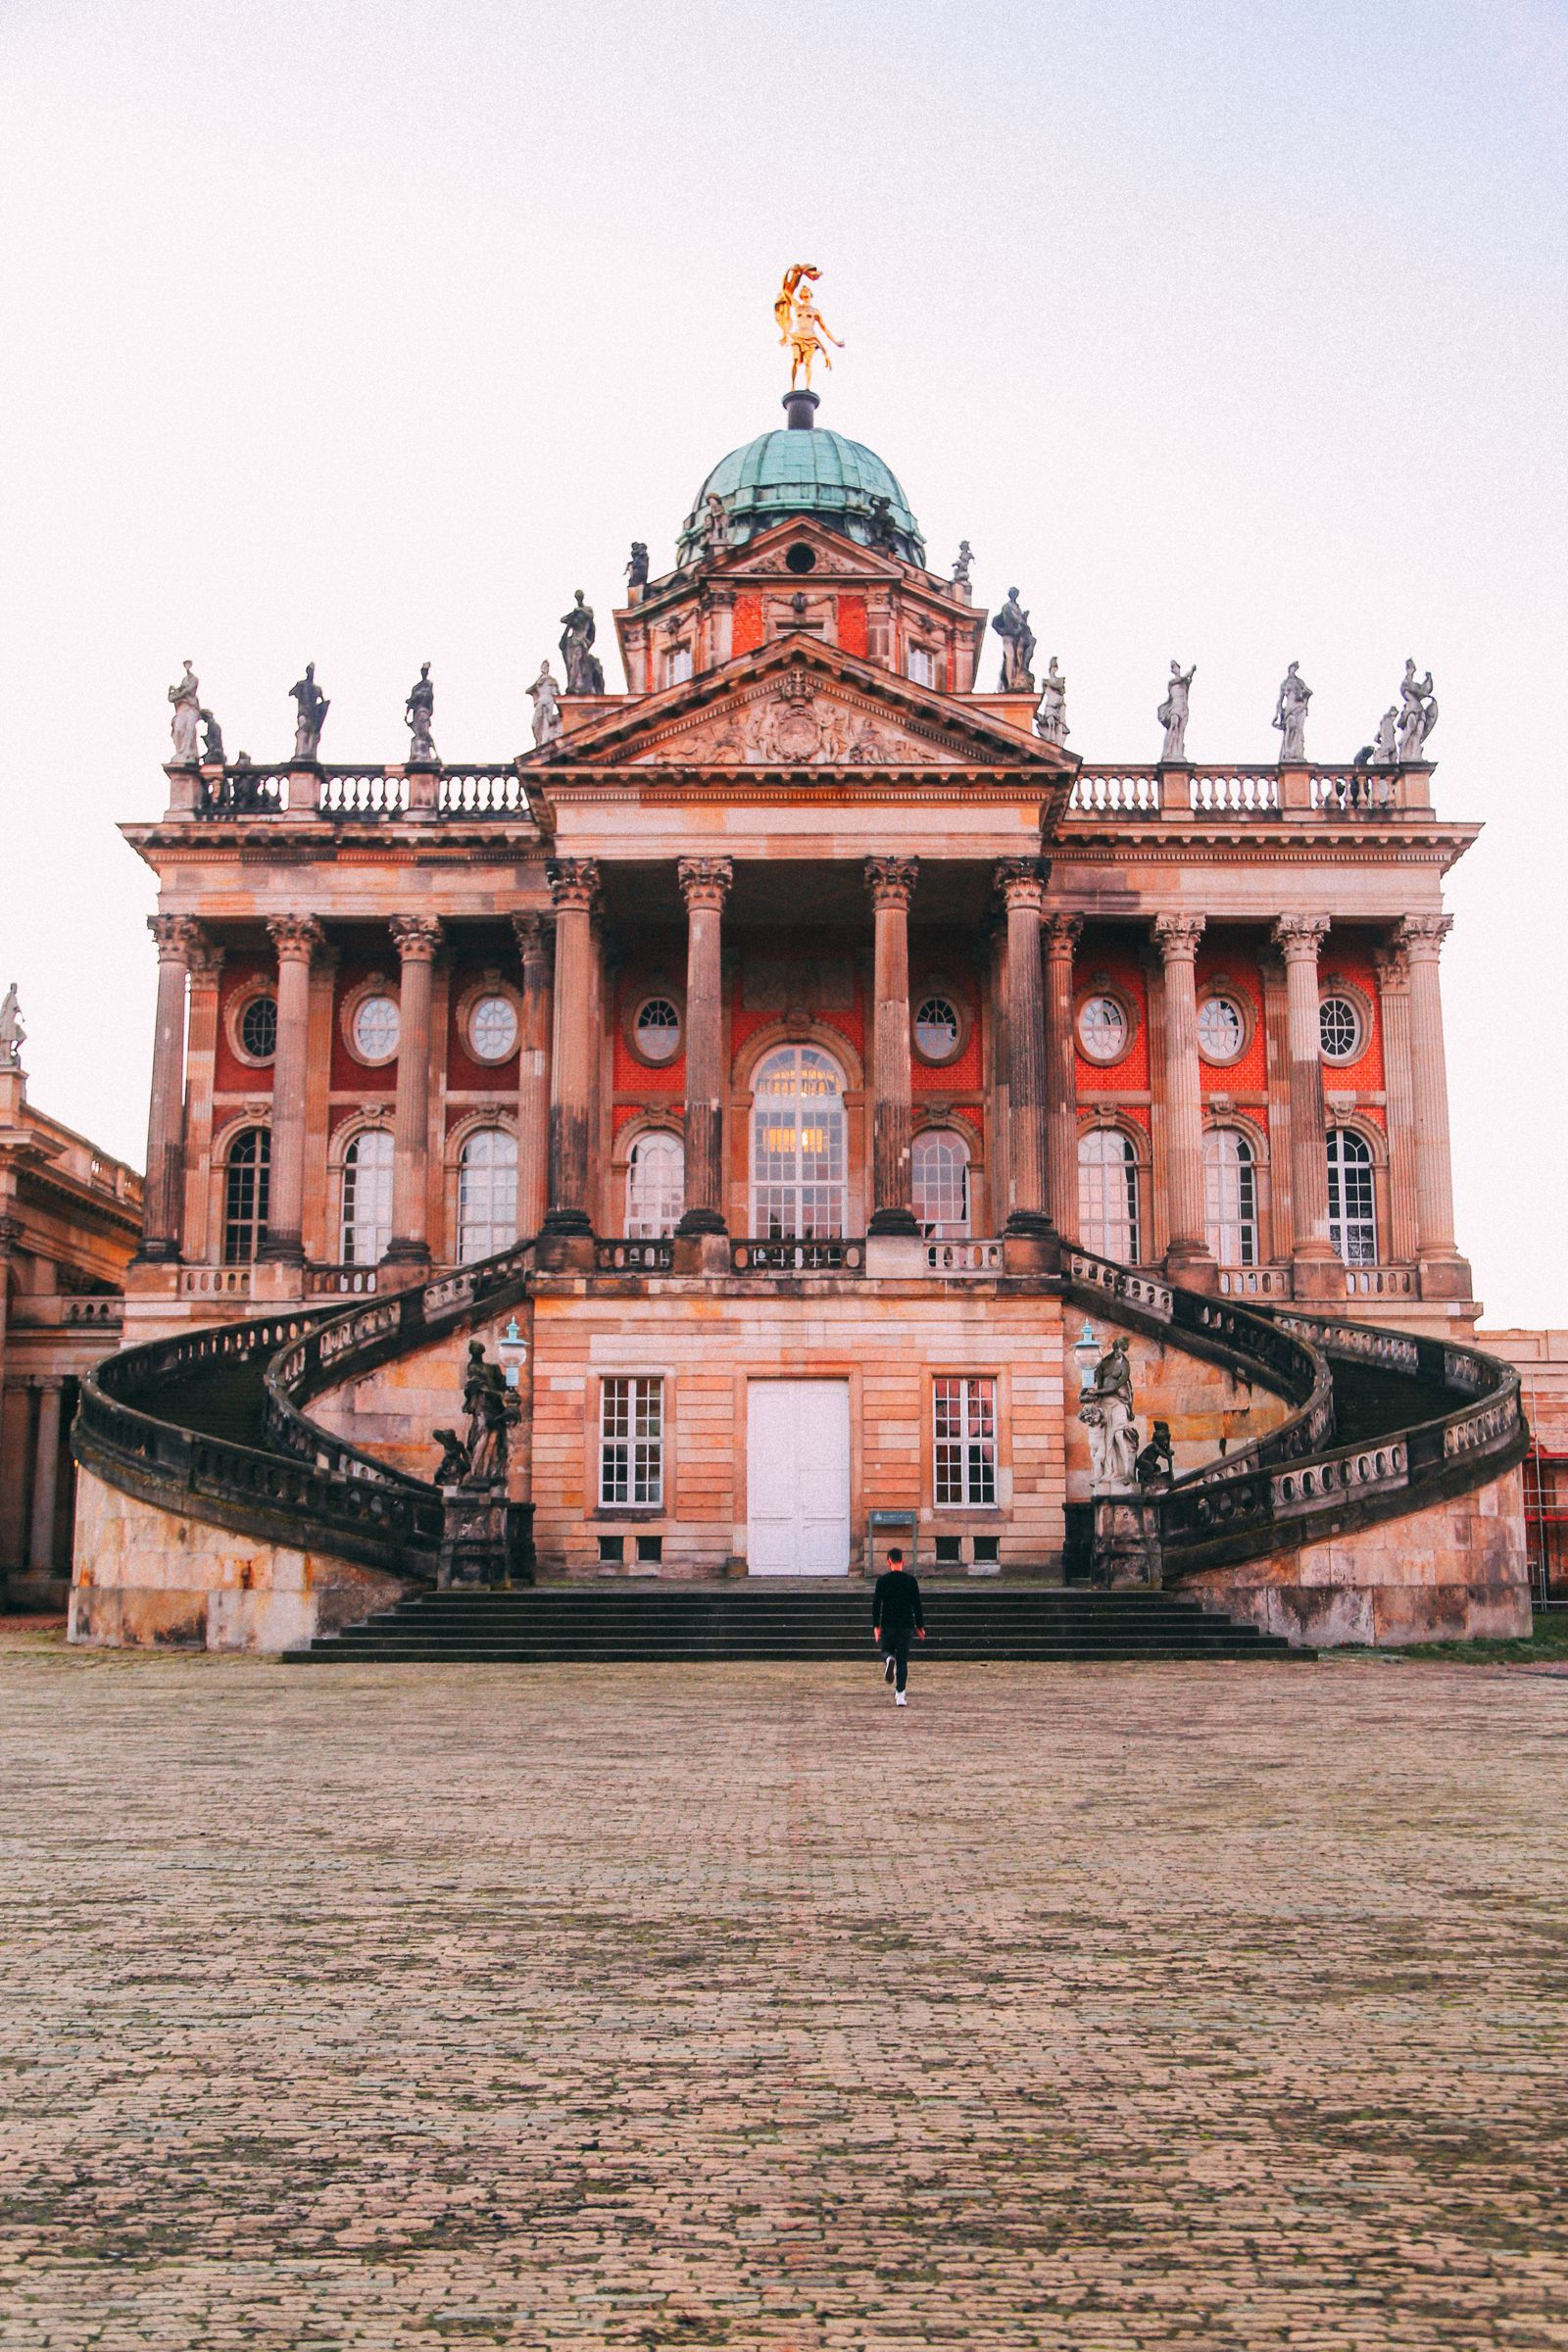 Things to do and see in Potsdam